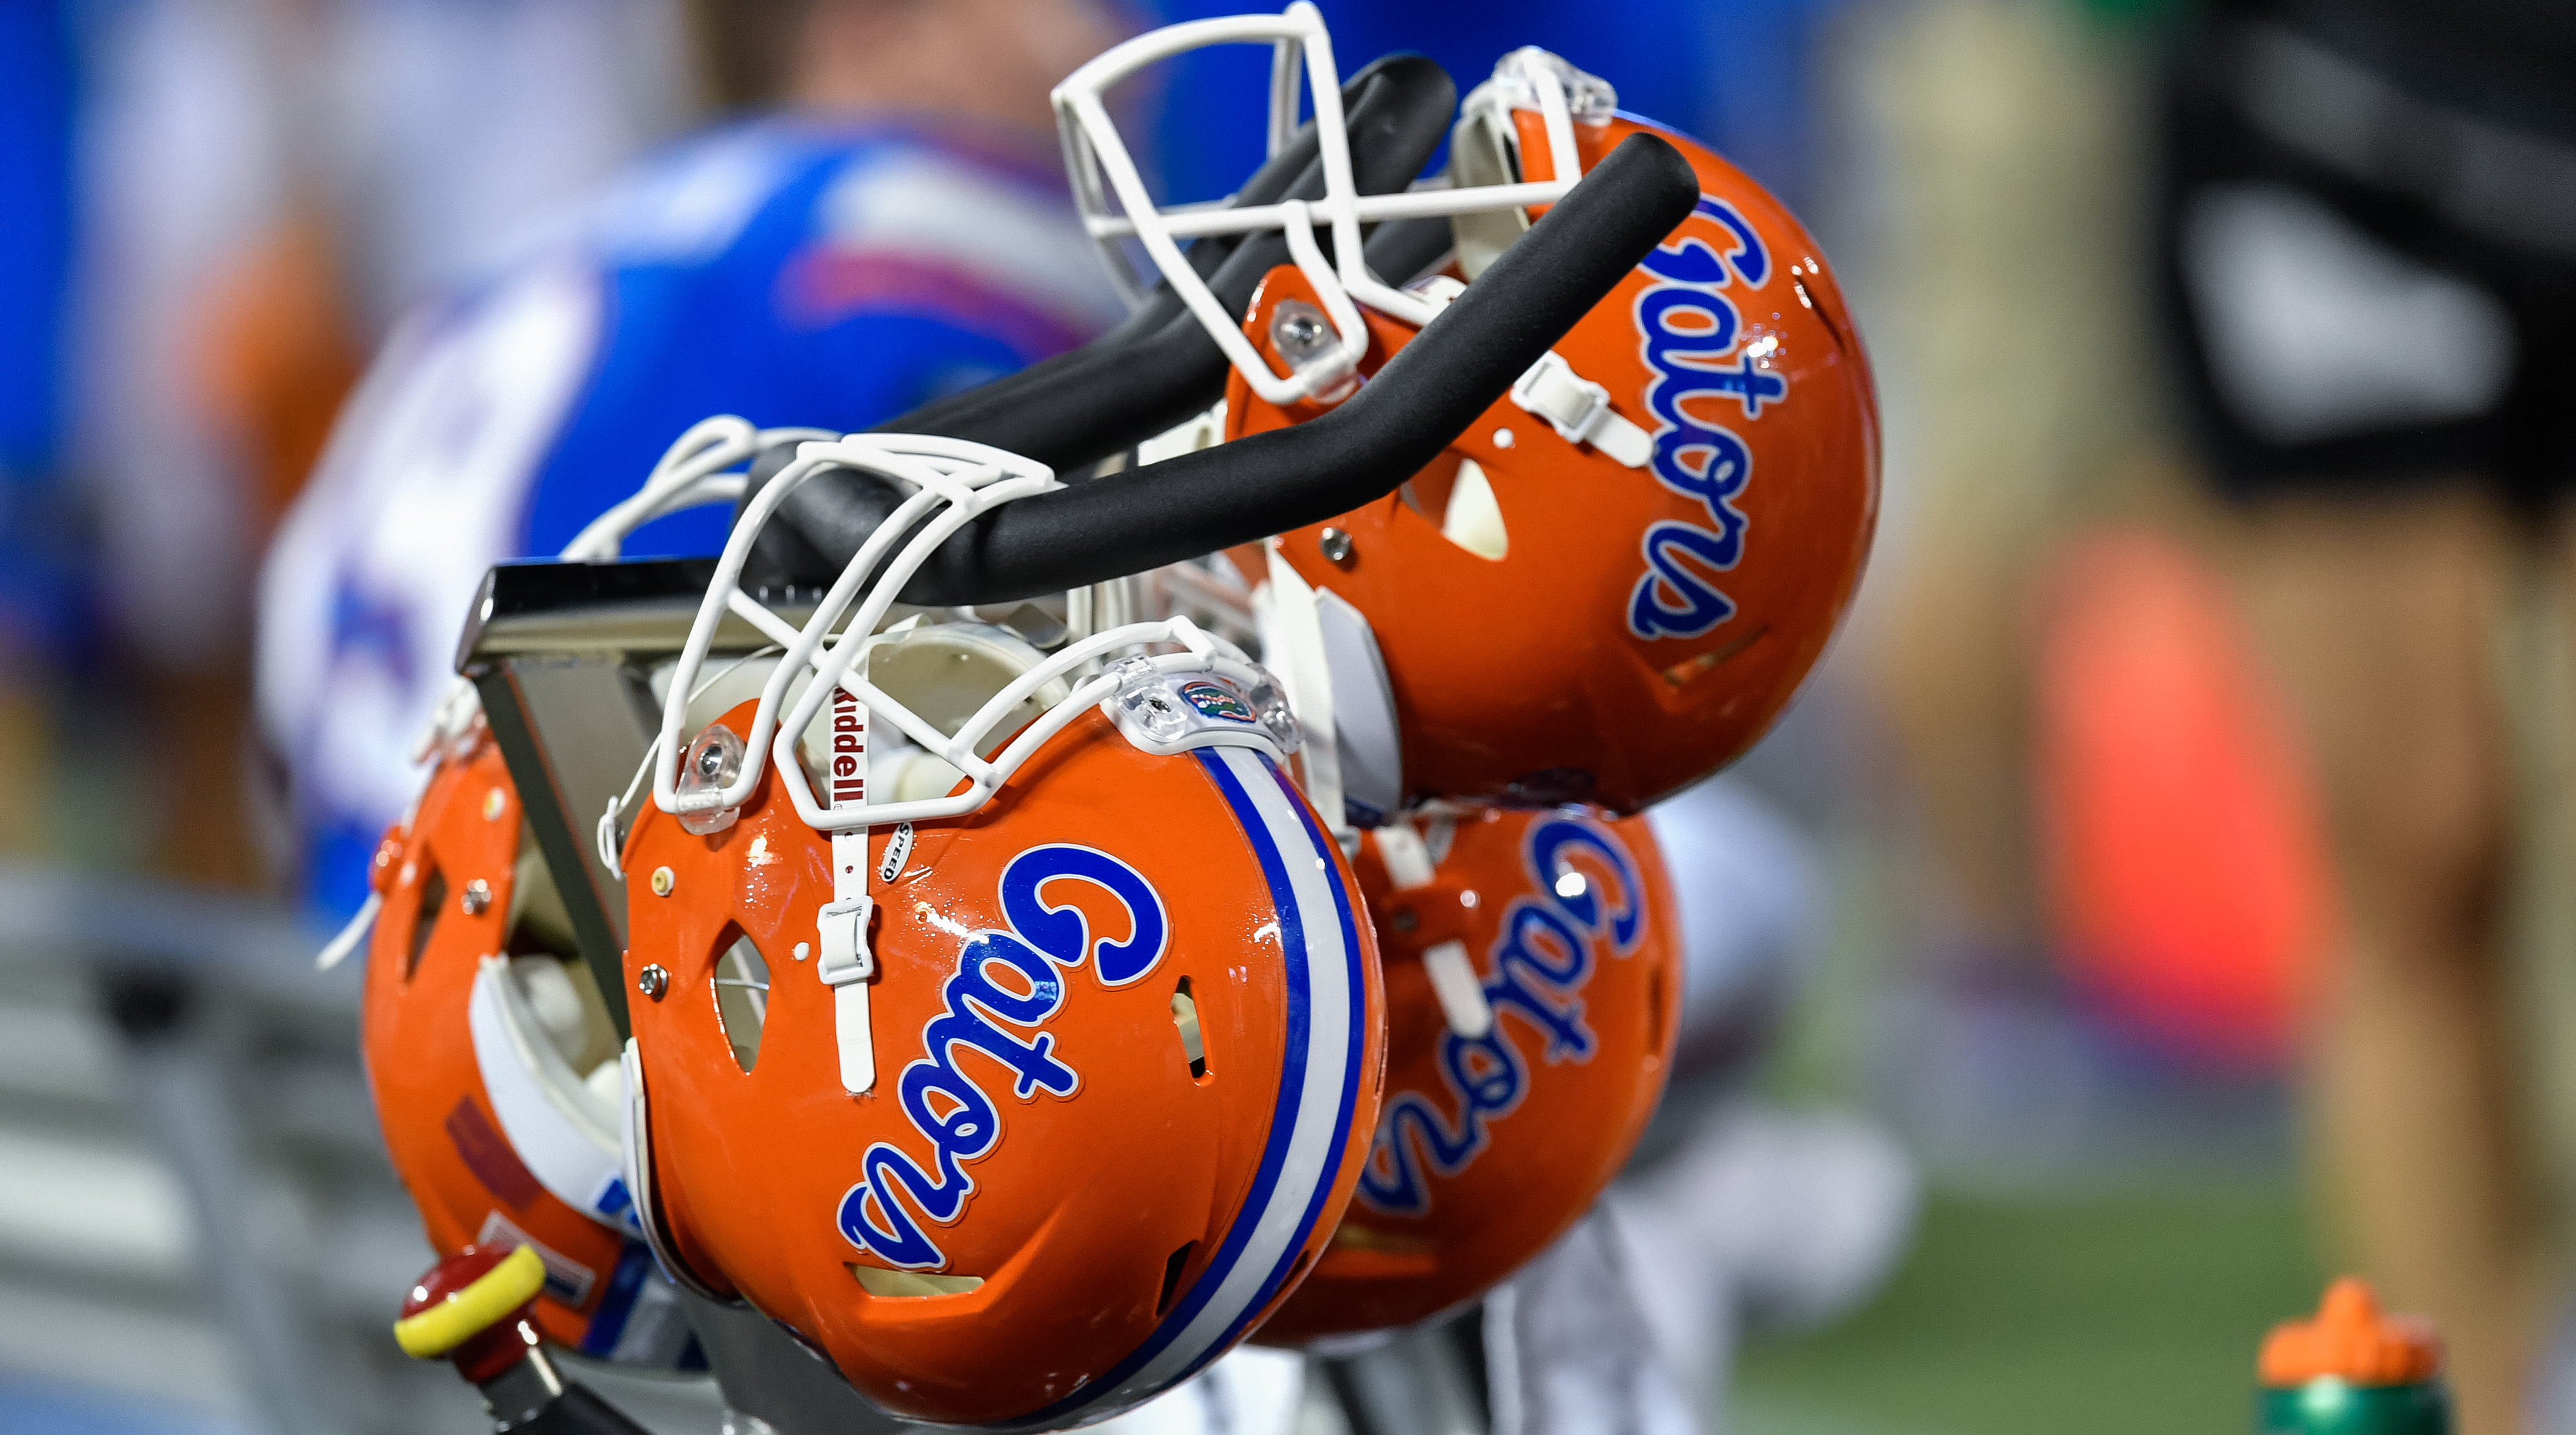 Florida Band Director Injured in Attack After Miami Season-Opener